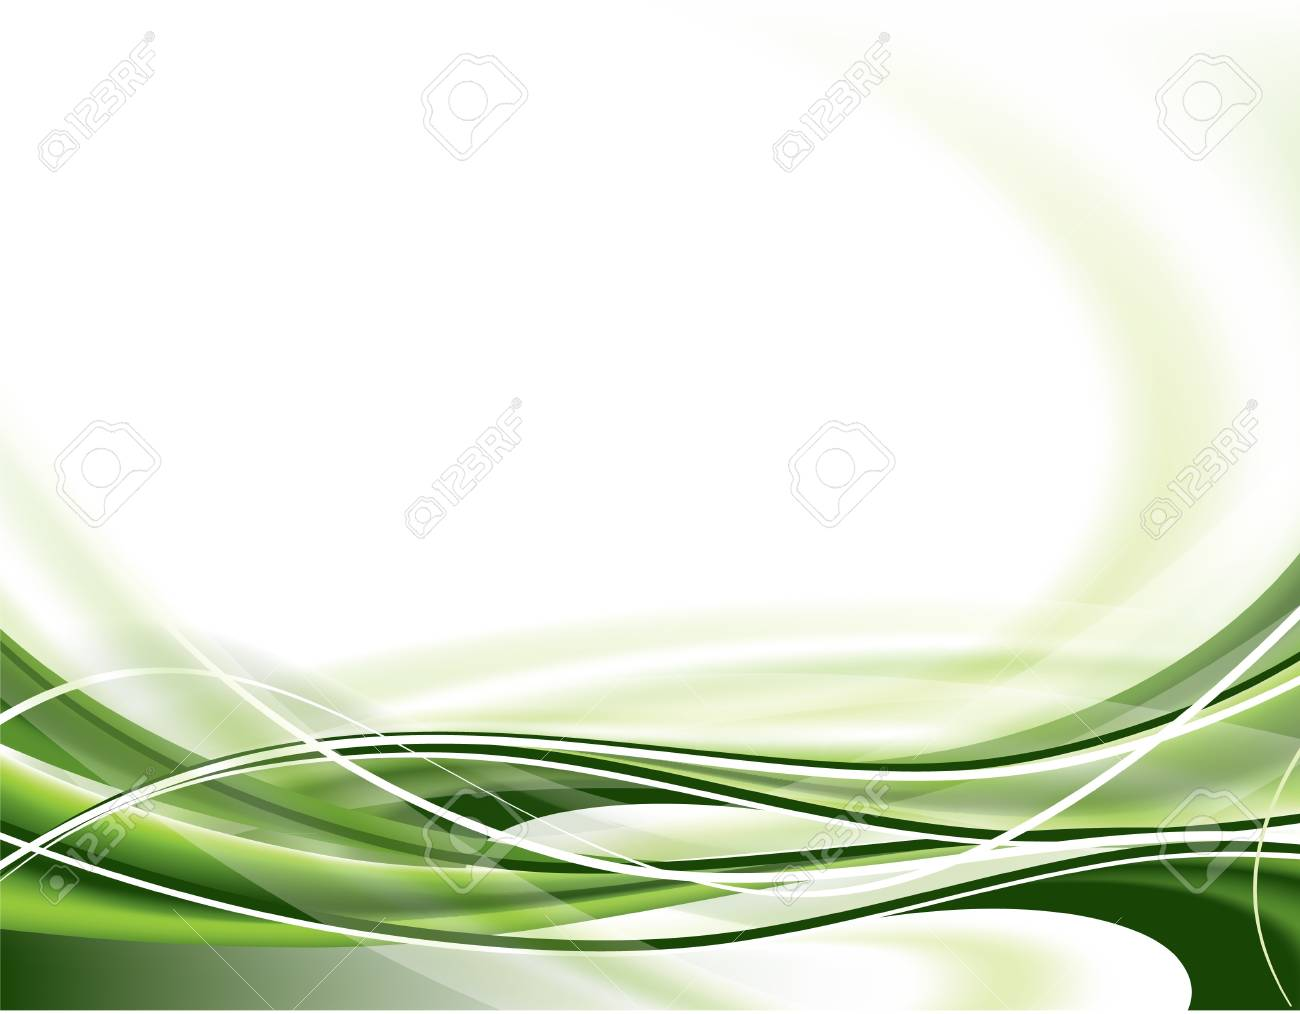 Abstract Vector Background Stock Vector - 13107065